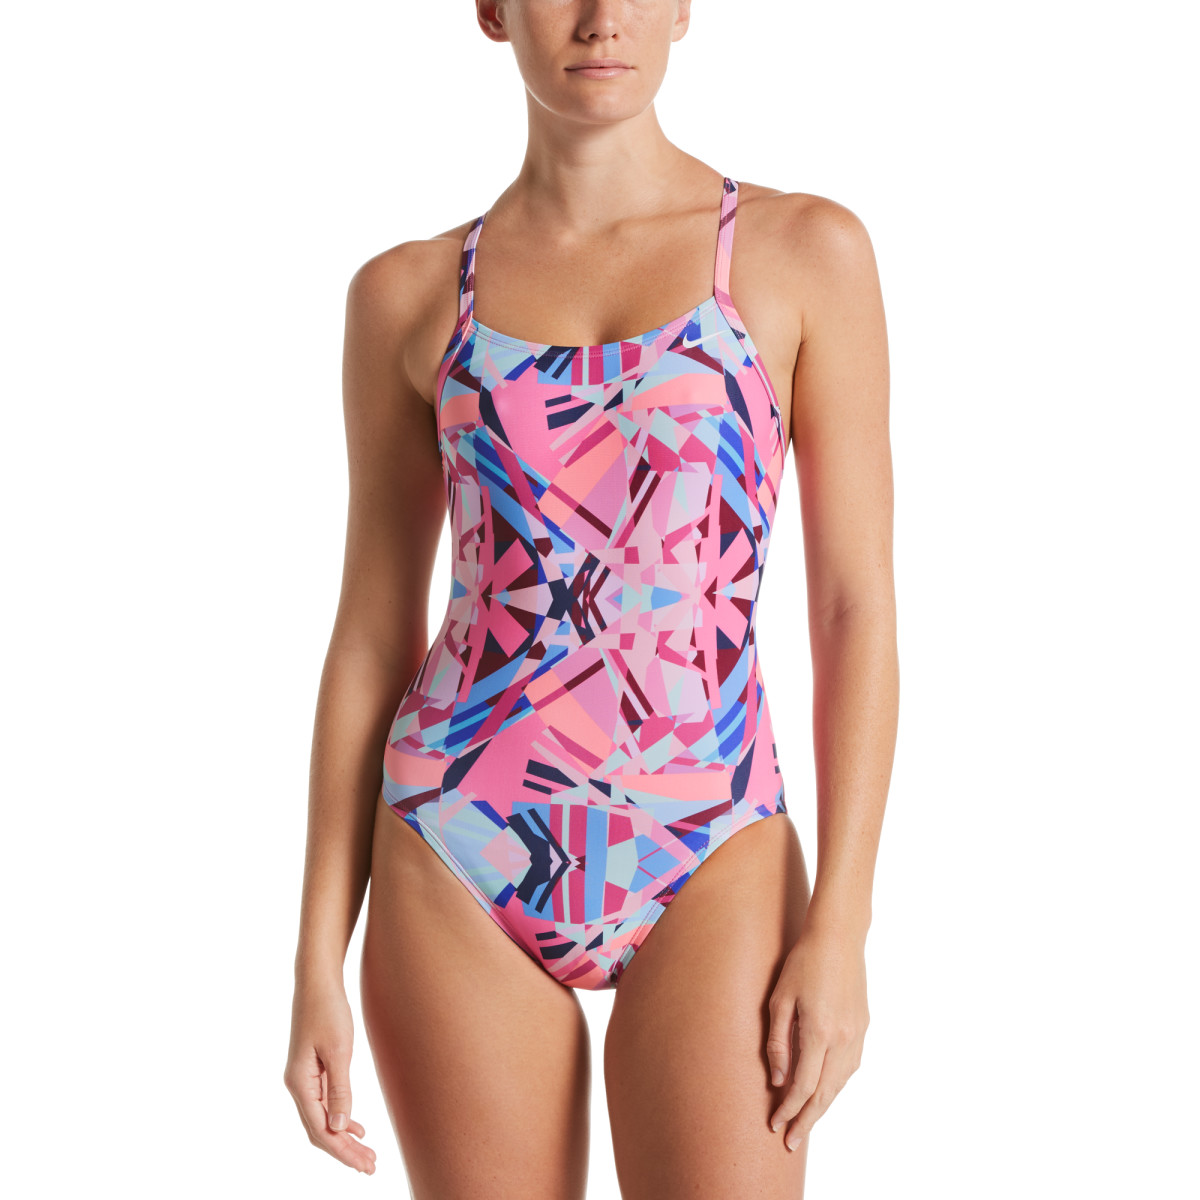 Nike Prism Punch Cut Out One Piece | Tri-beklædning